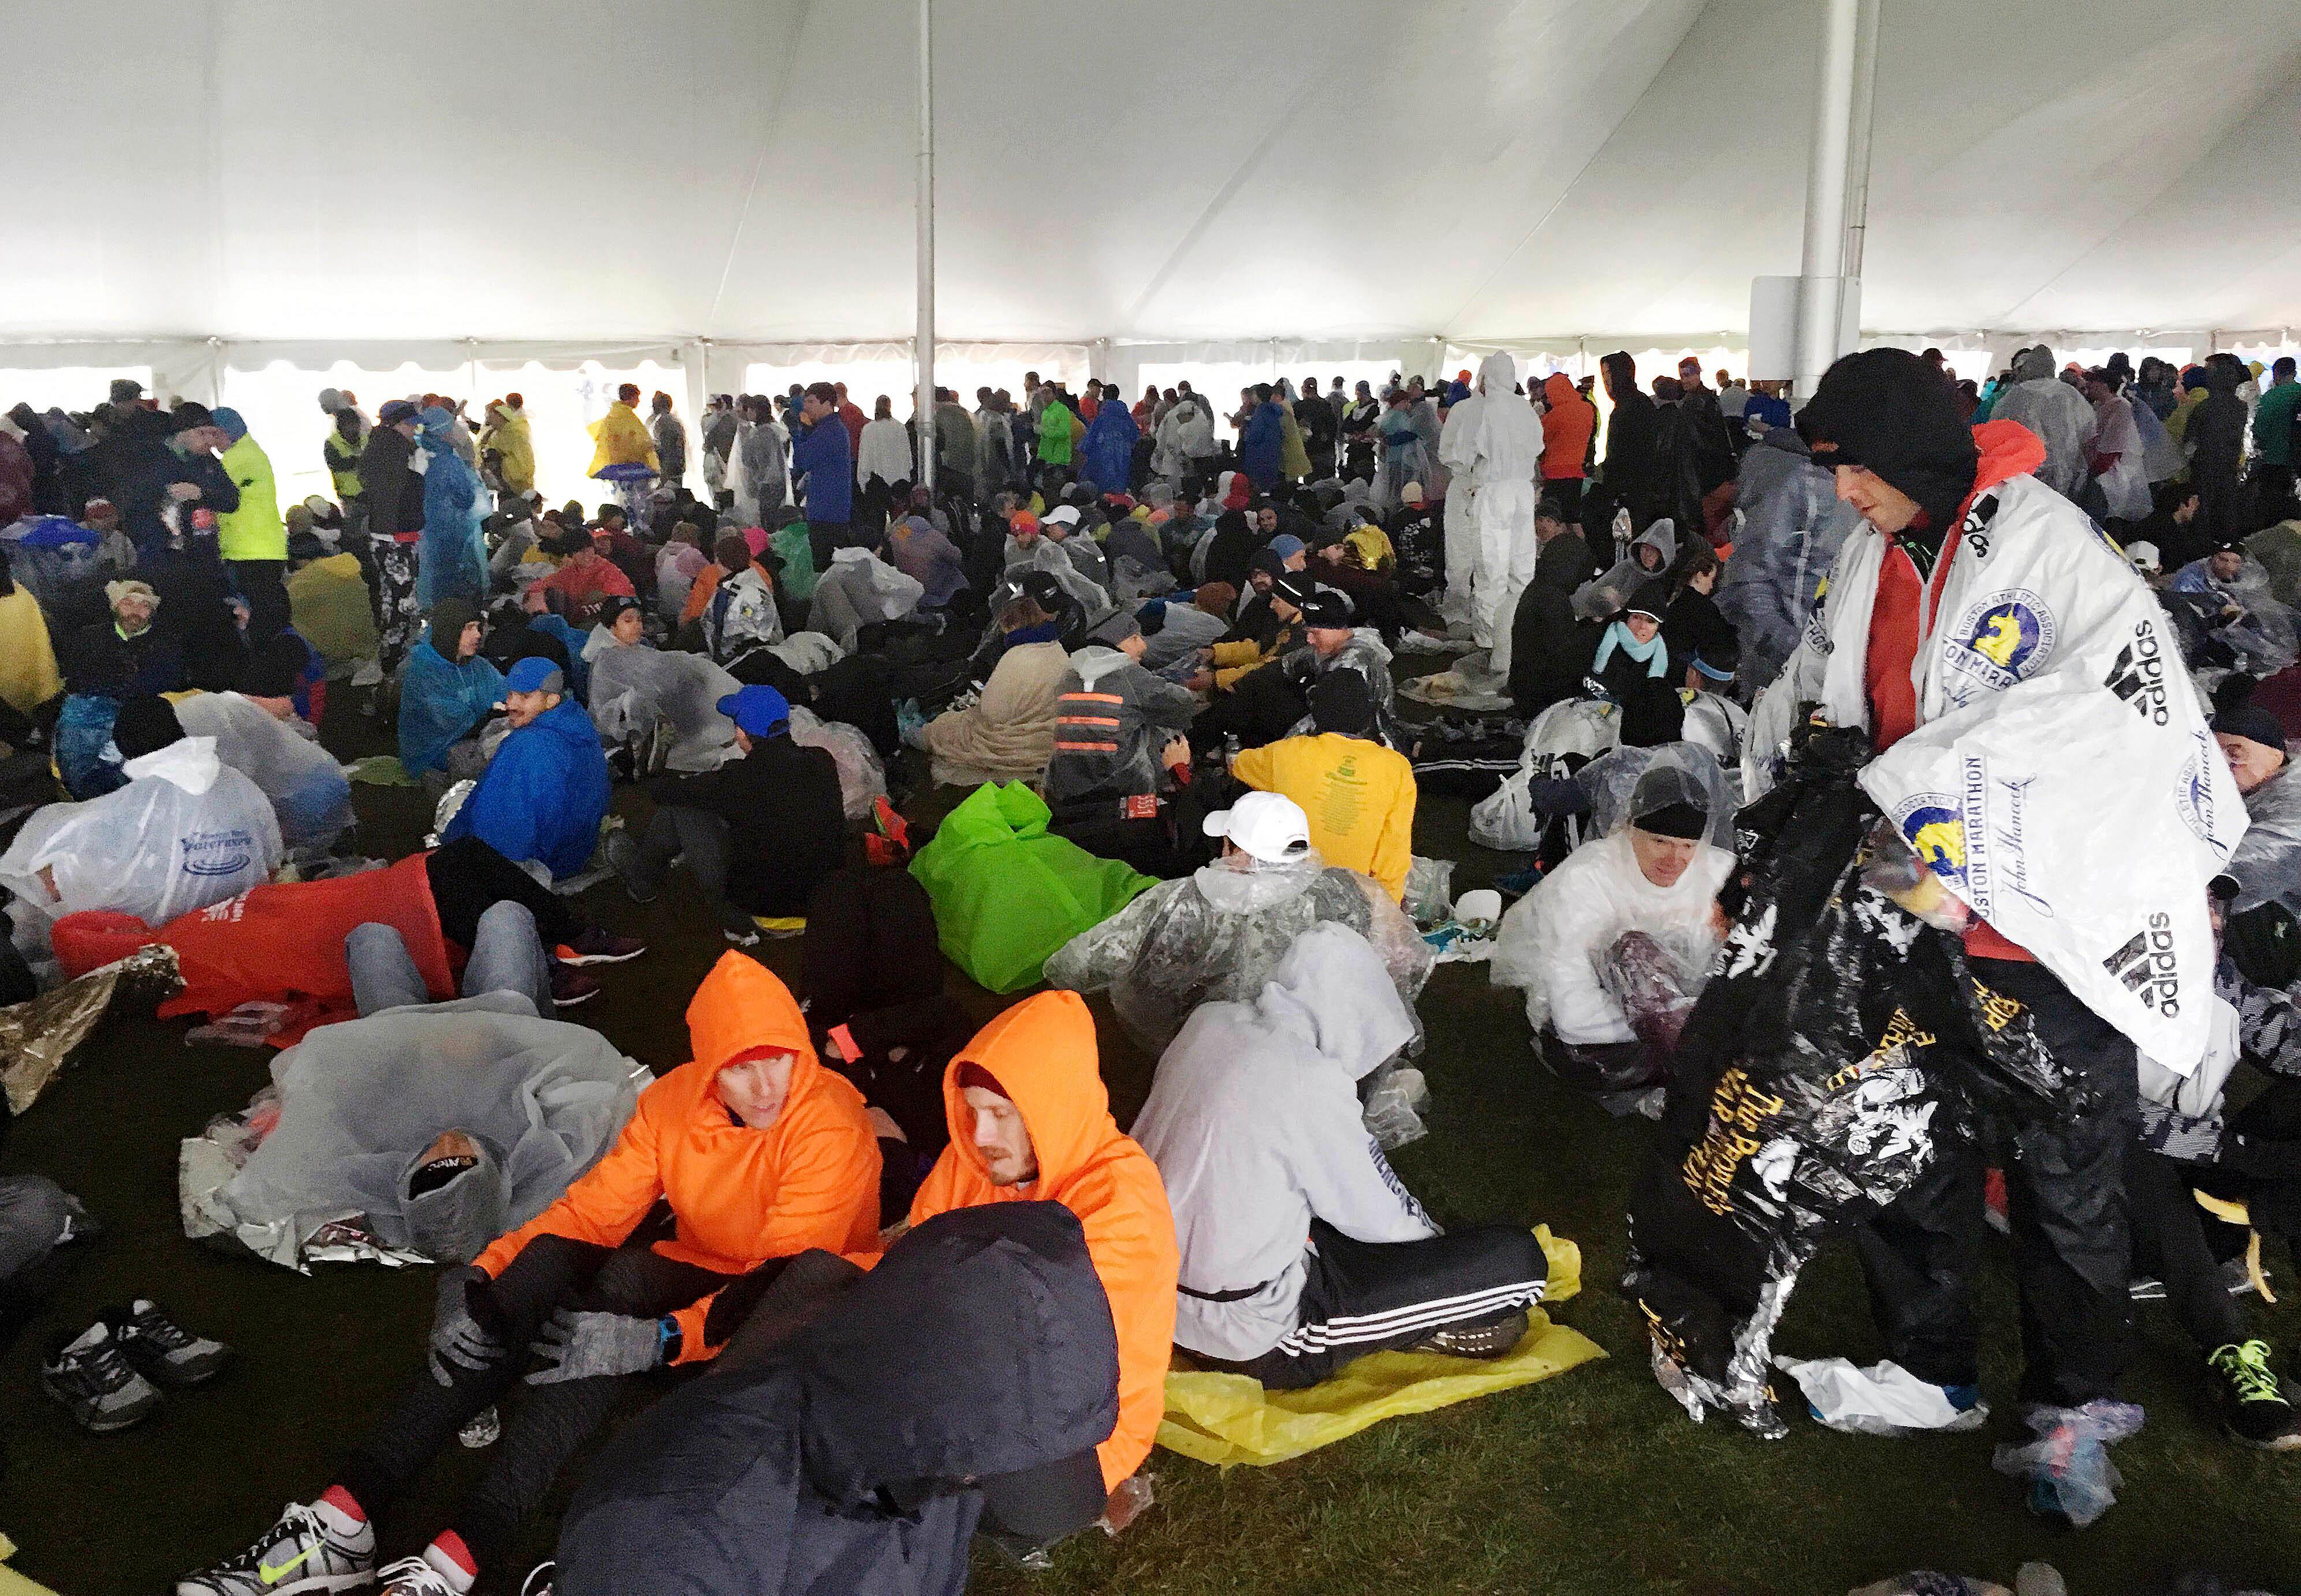 Athletes wait under a tent at the athlete's village for the start of the the 122nd Boston Marathon on Monday, April 16, 2018, in Hopkinton, Mass. (AP Photo/Jennifer McDermott)